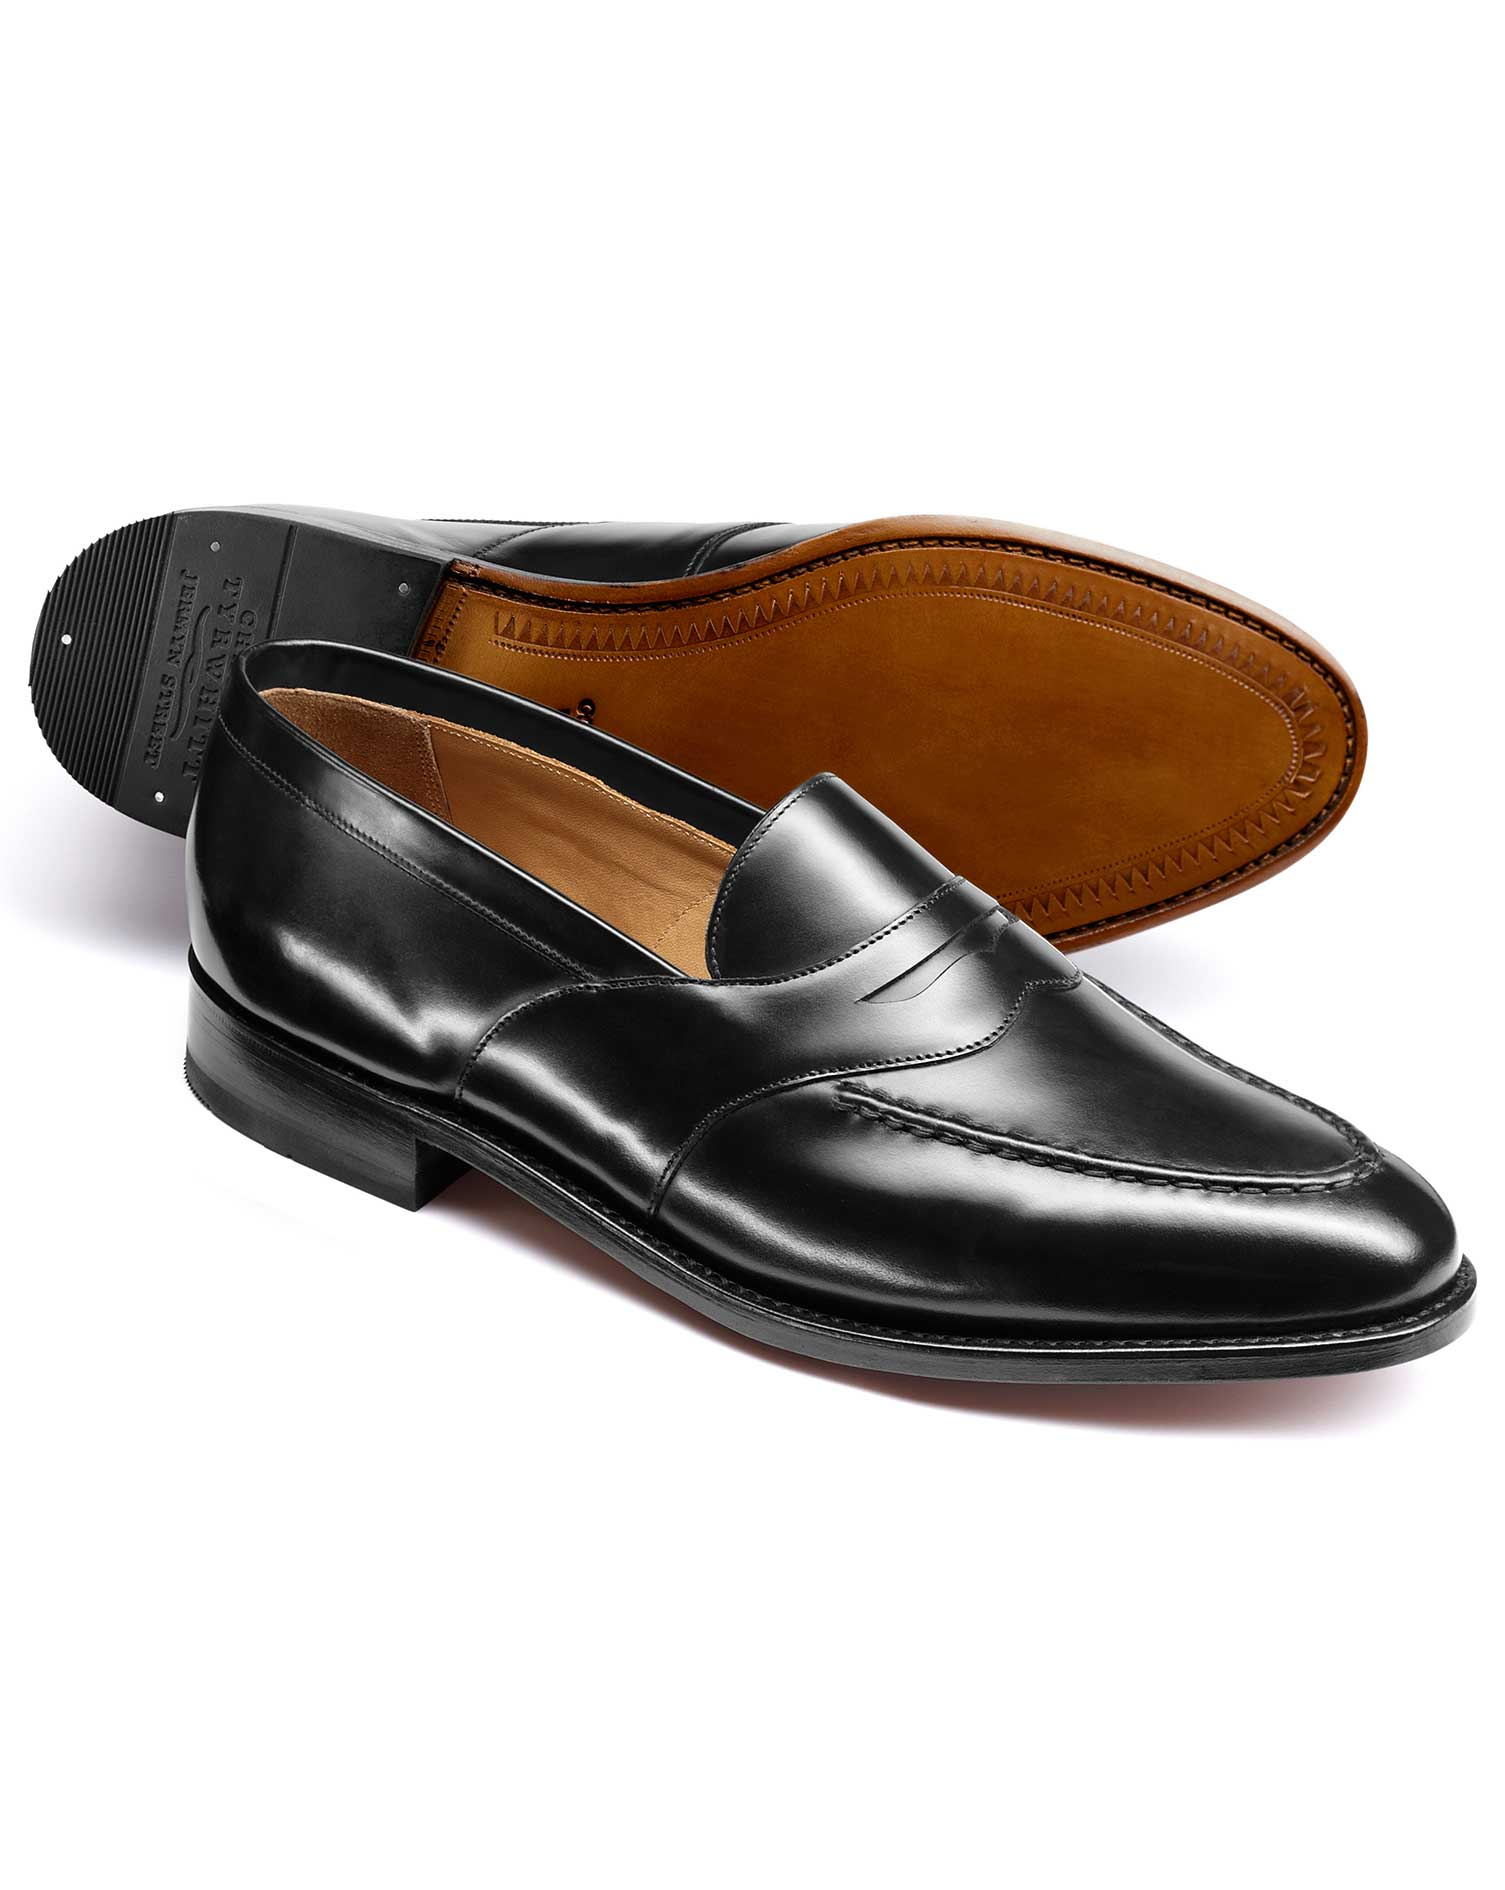 Black Goodyear Welted Saddle Loafer Size 13 R by Charles Tyrwhitt